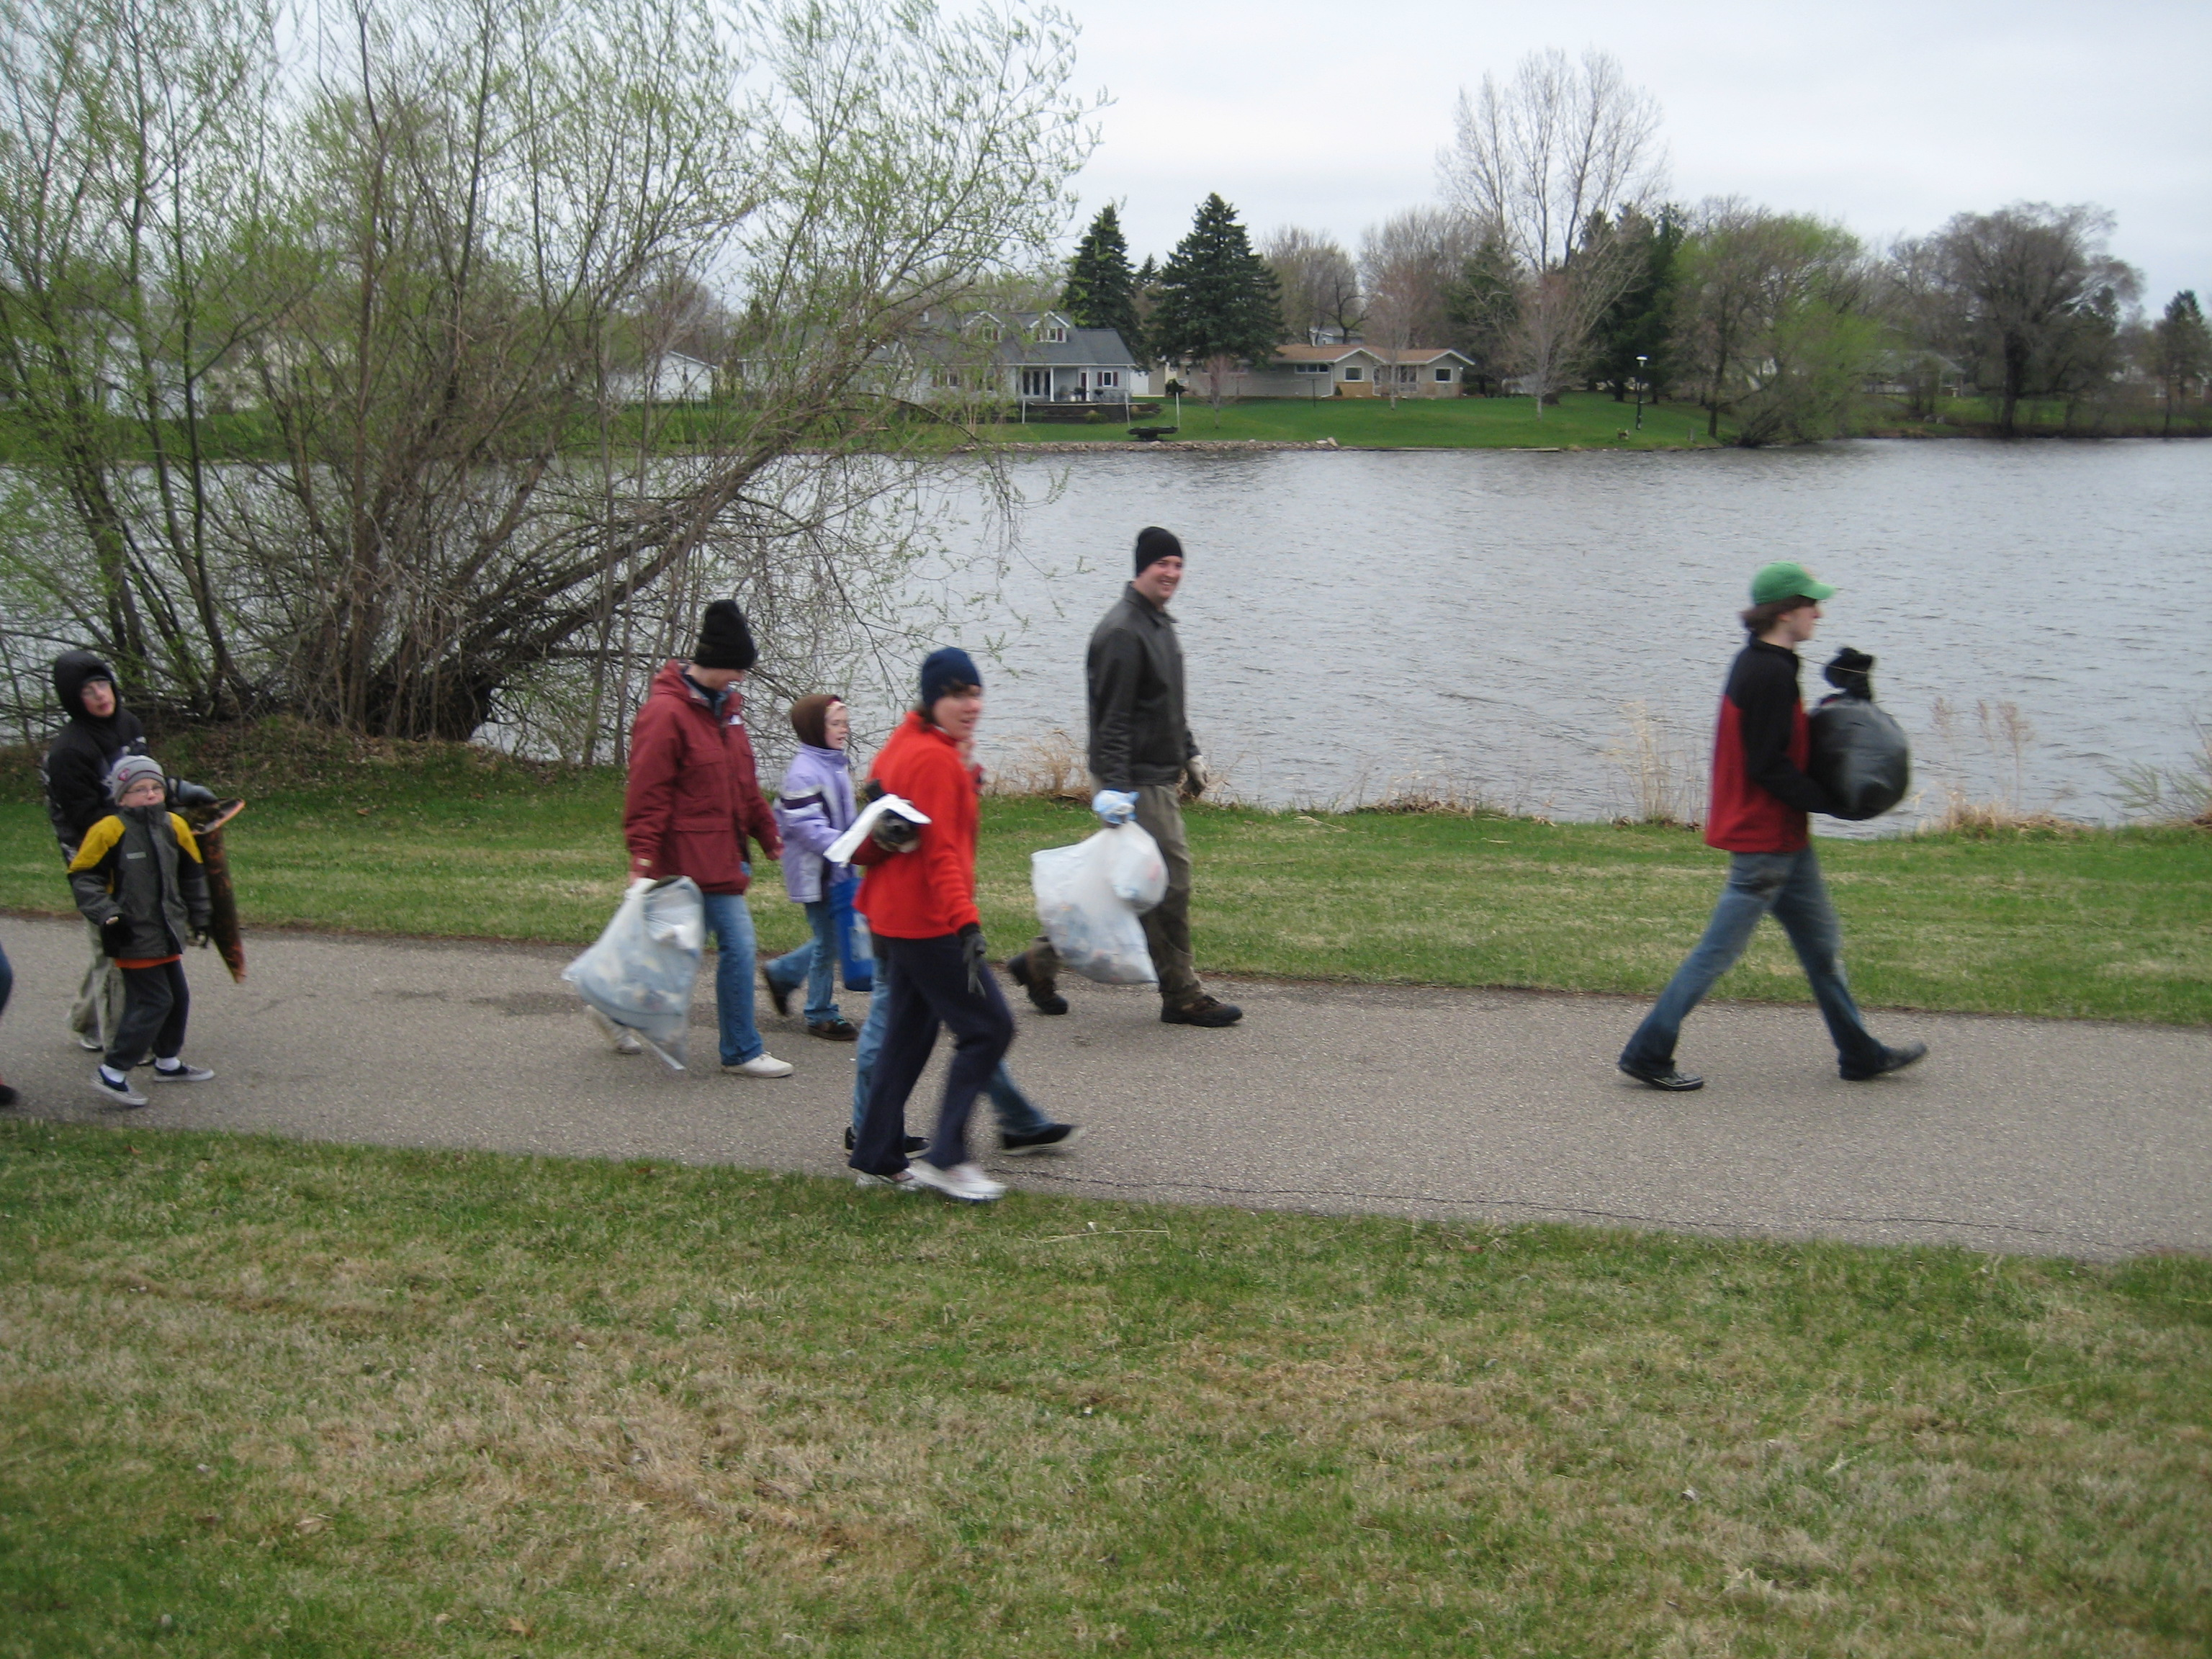 Taking out the trash in Minnesota.